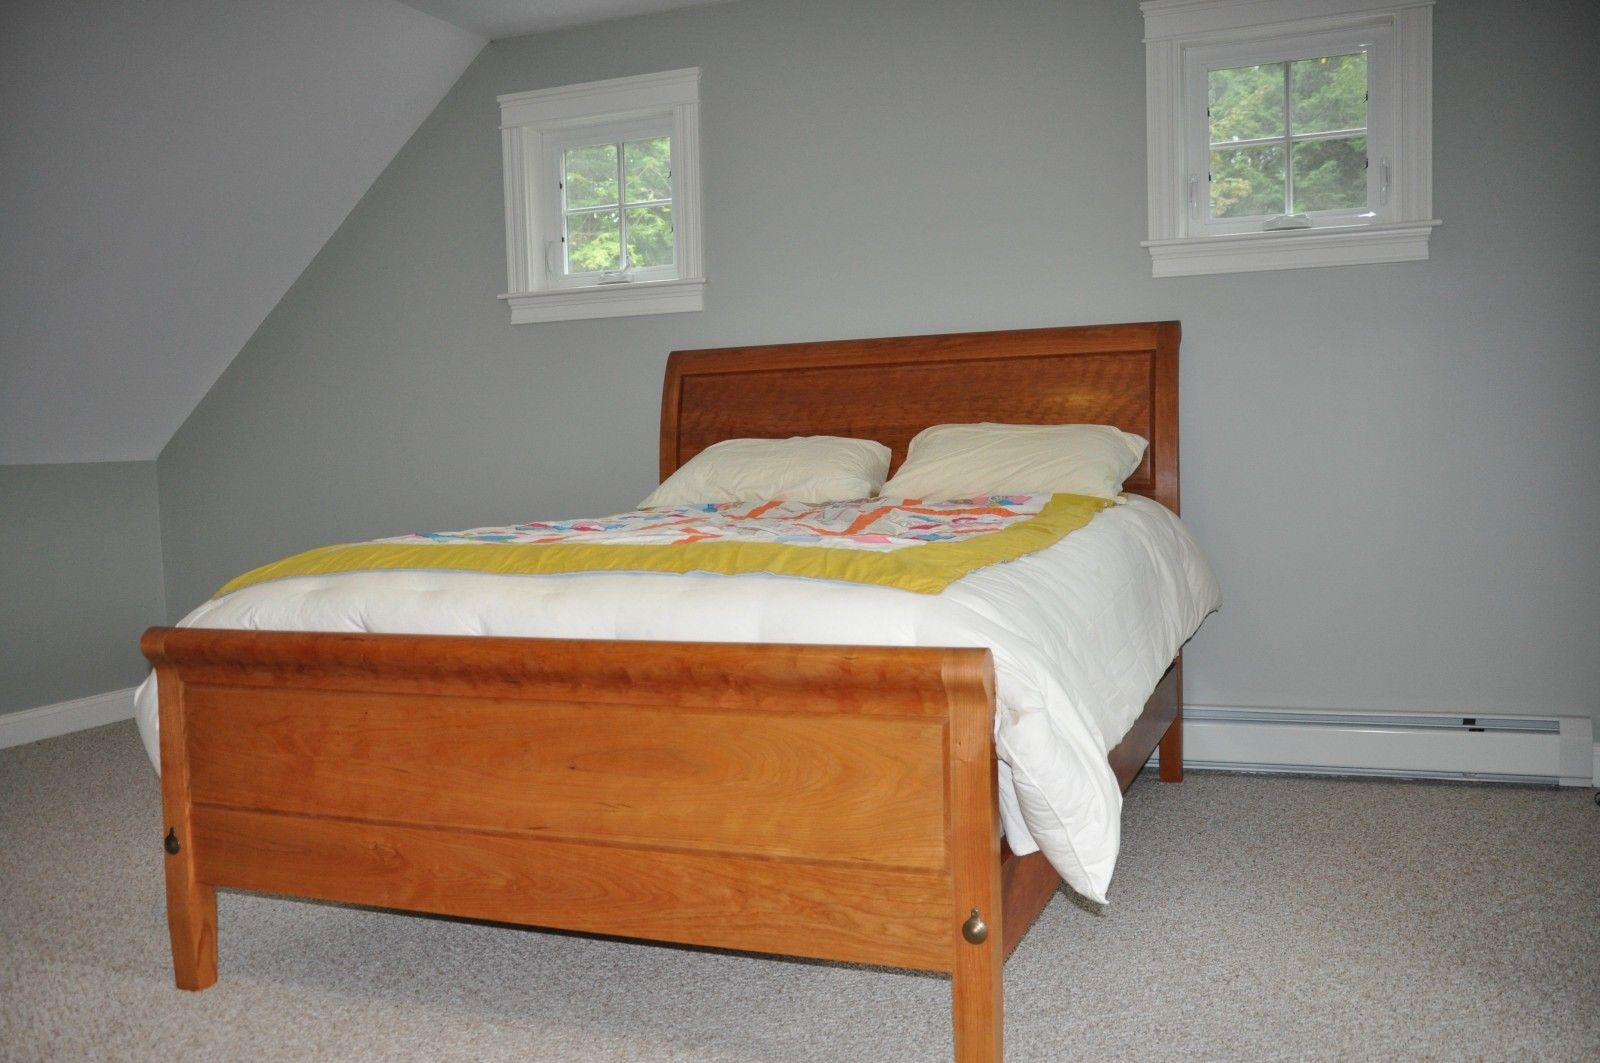 Hand Crafted Sleigh Bed With Low Footboard By Paul Mullen